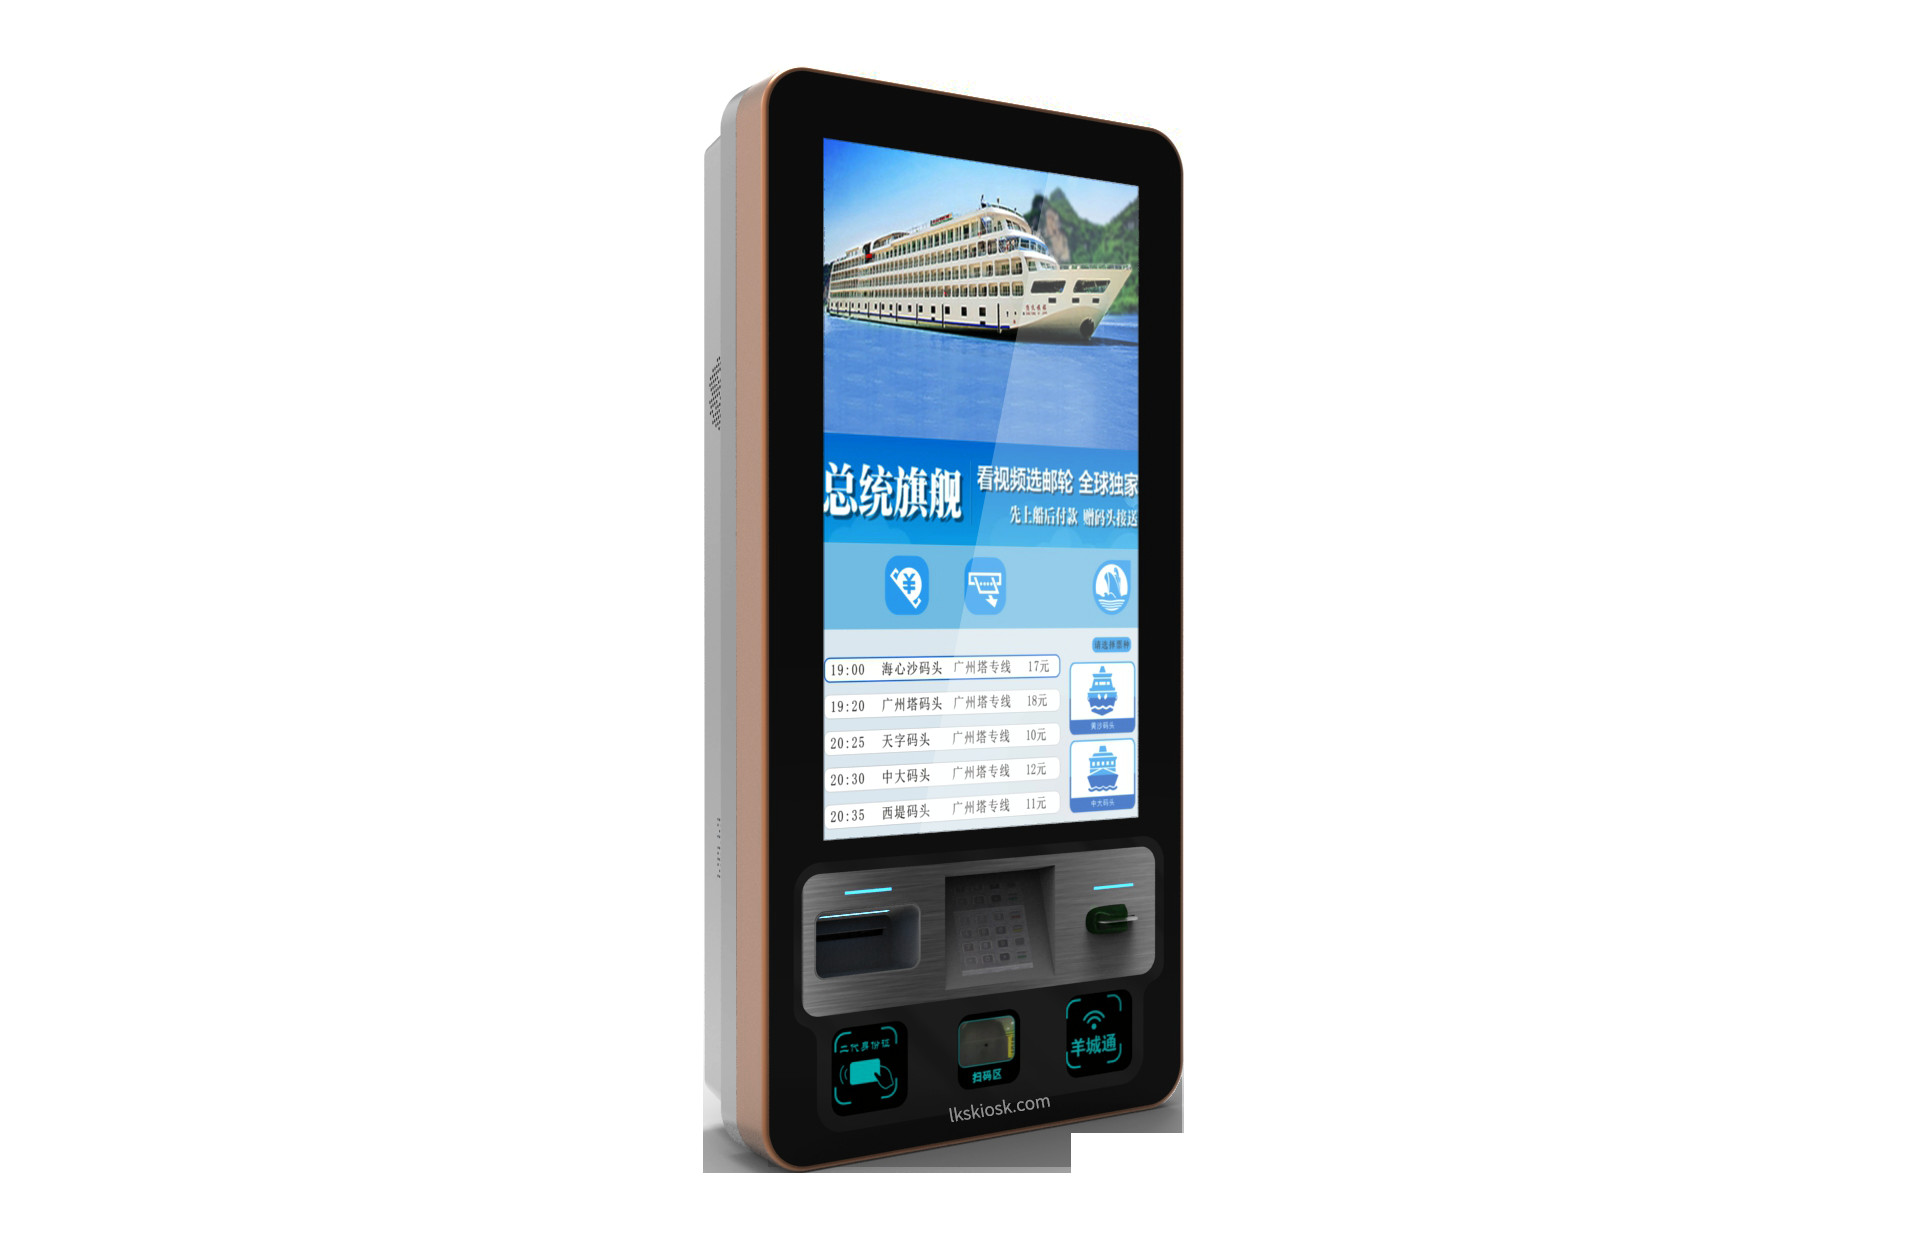 Wall Mounted Self Ordering Kiosk 32 Inch Bank Card Reader For Restaurant